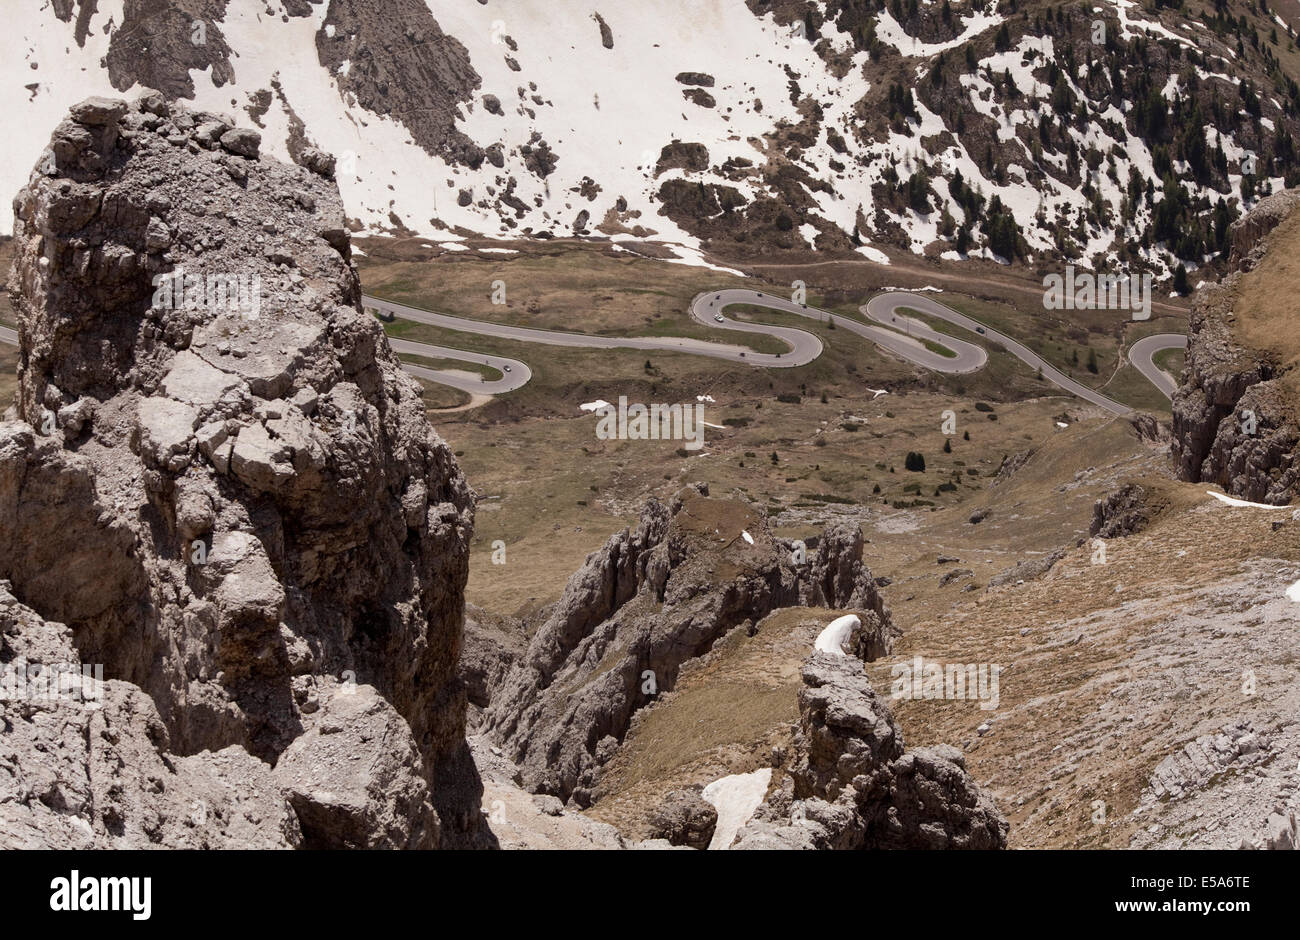 Motorbikes on the famous hairpin bends on the road through the high altitude Pordoi Pass in the Dolomites, Italy - Stock Image